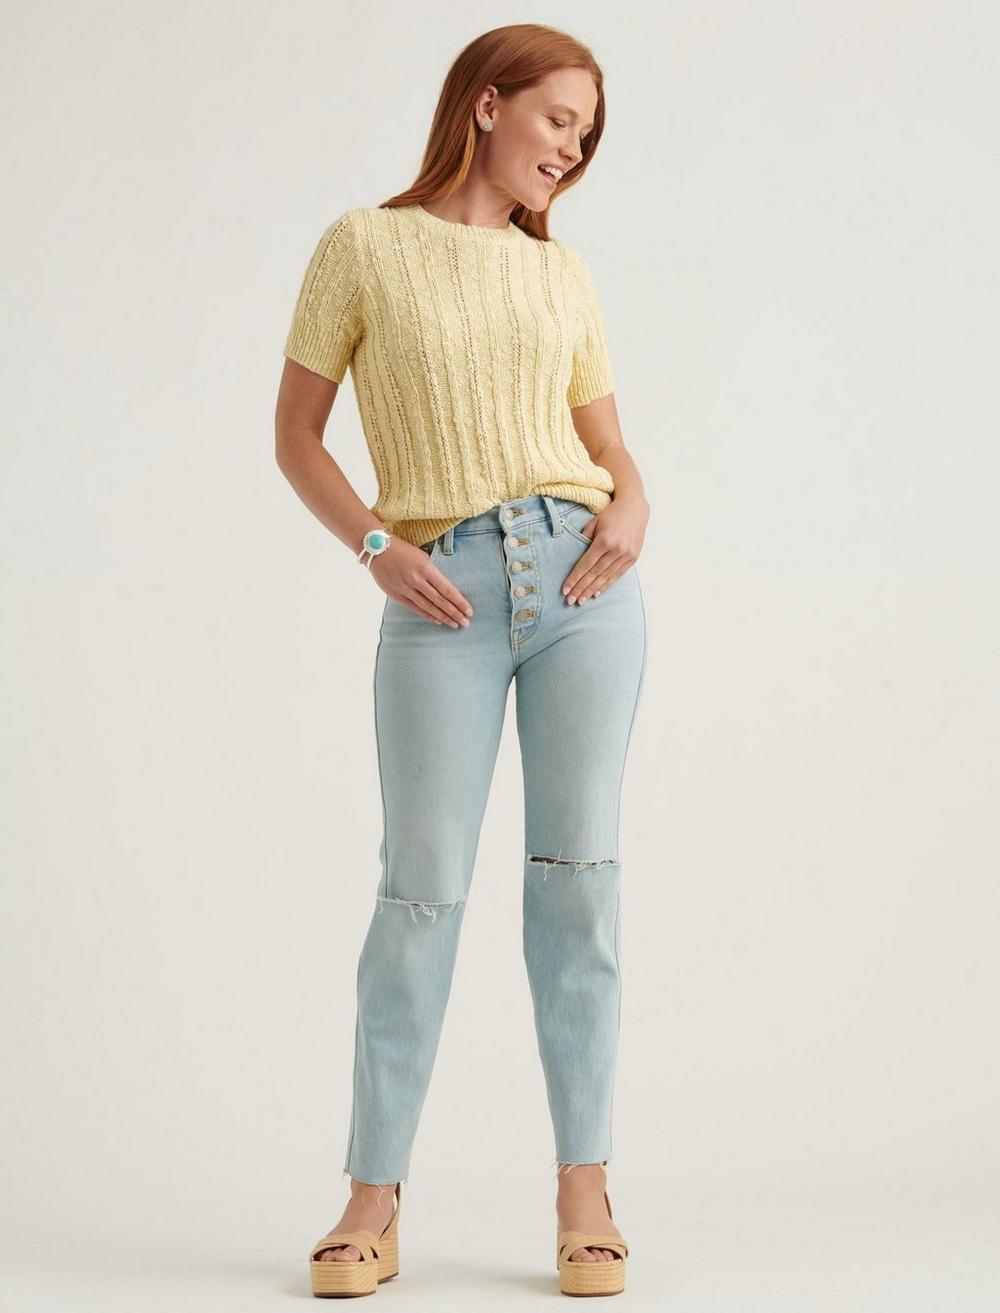 LIGHTWEIGHT SHORT SLEEVE CABLE SWEATER, image 2